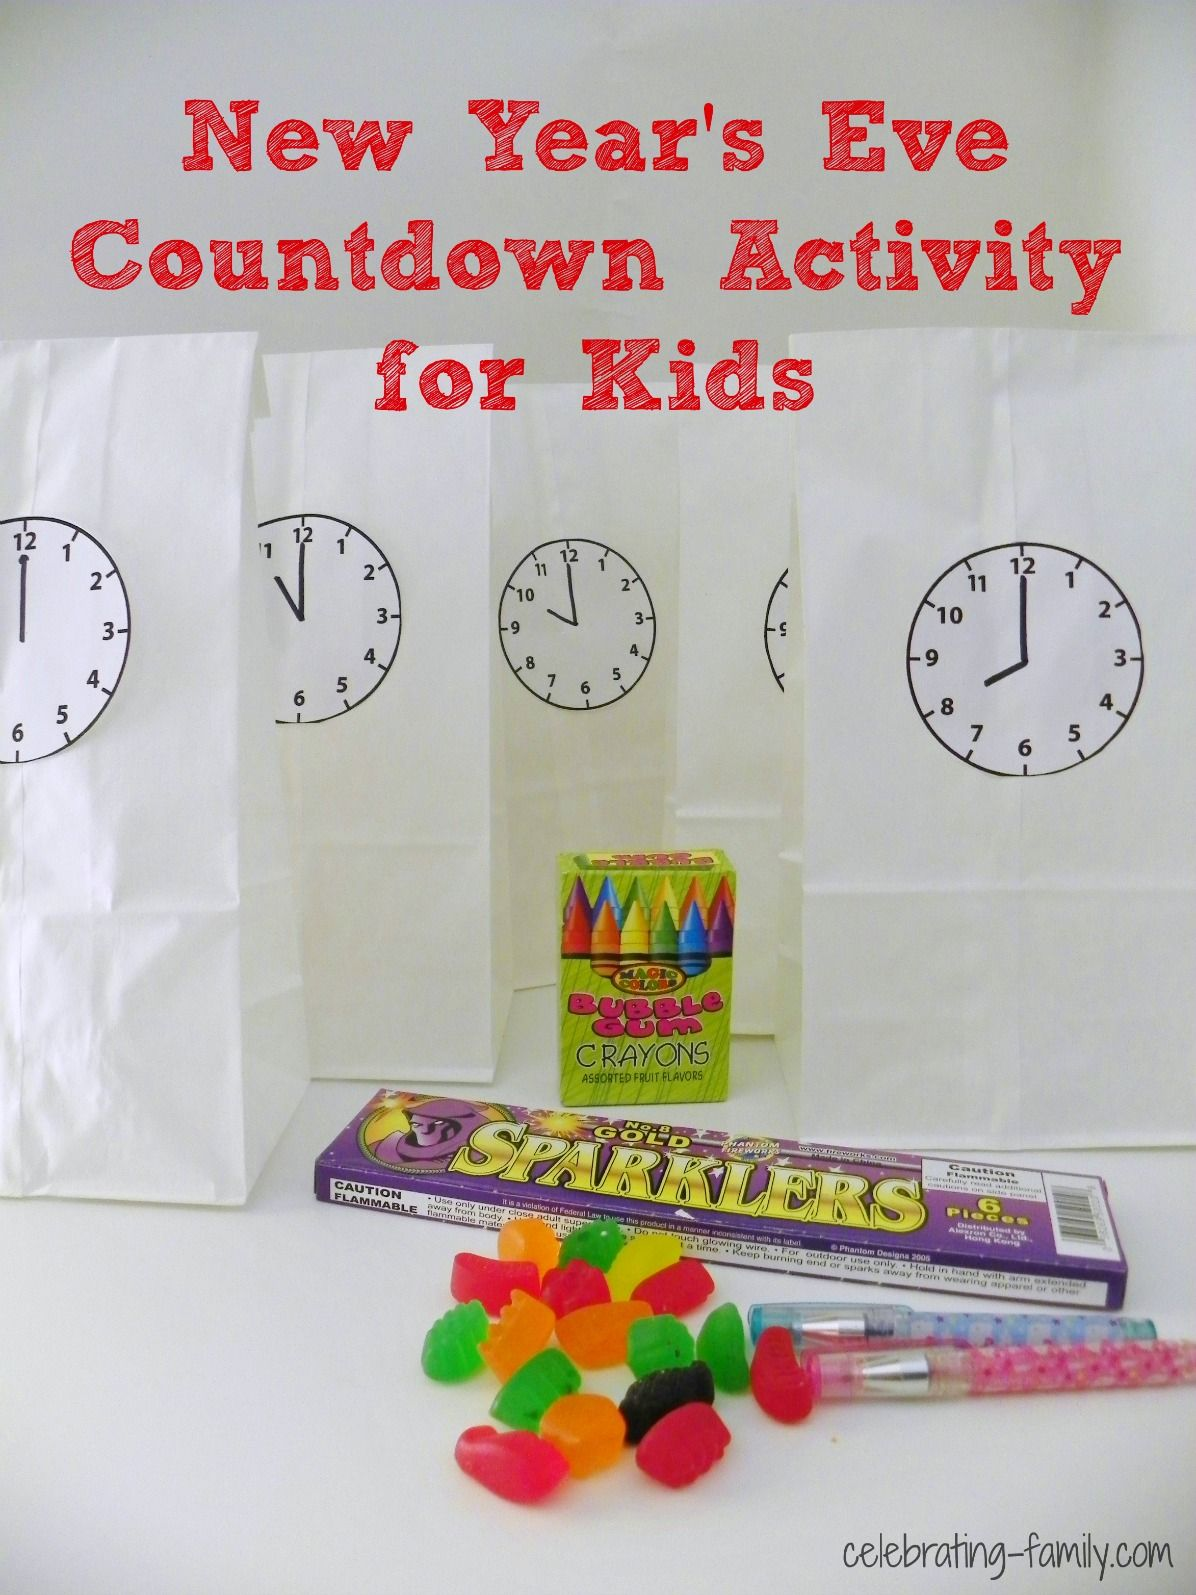 New Year's Eve Countdown Activity for Kids (With images